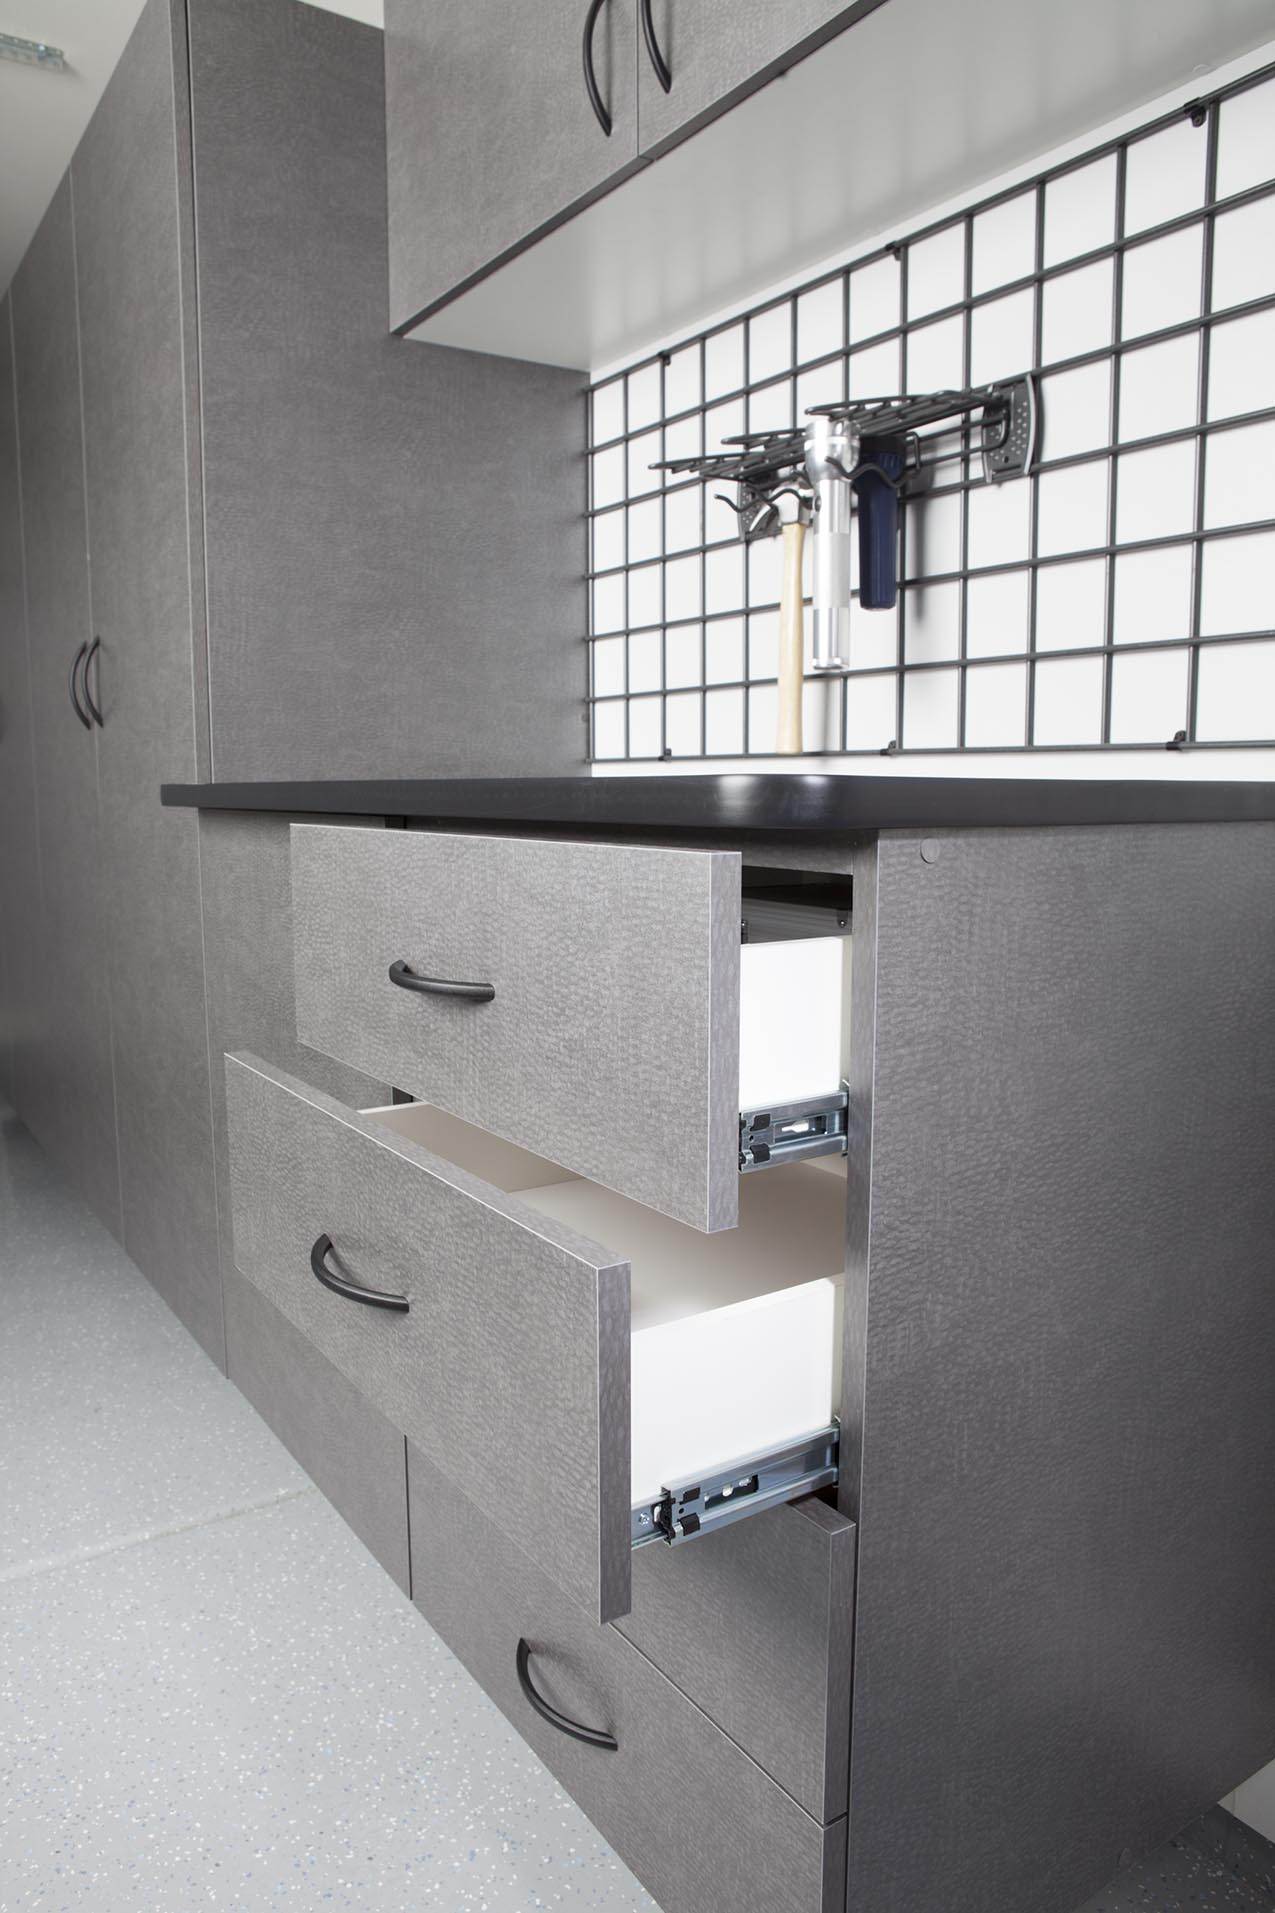 Pewter Workbench with Open Drawers